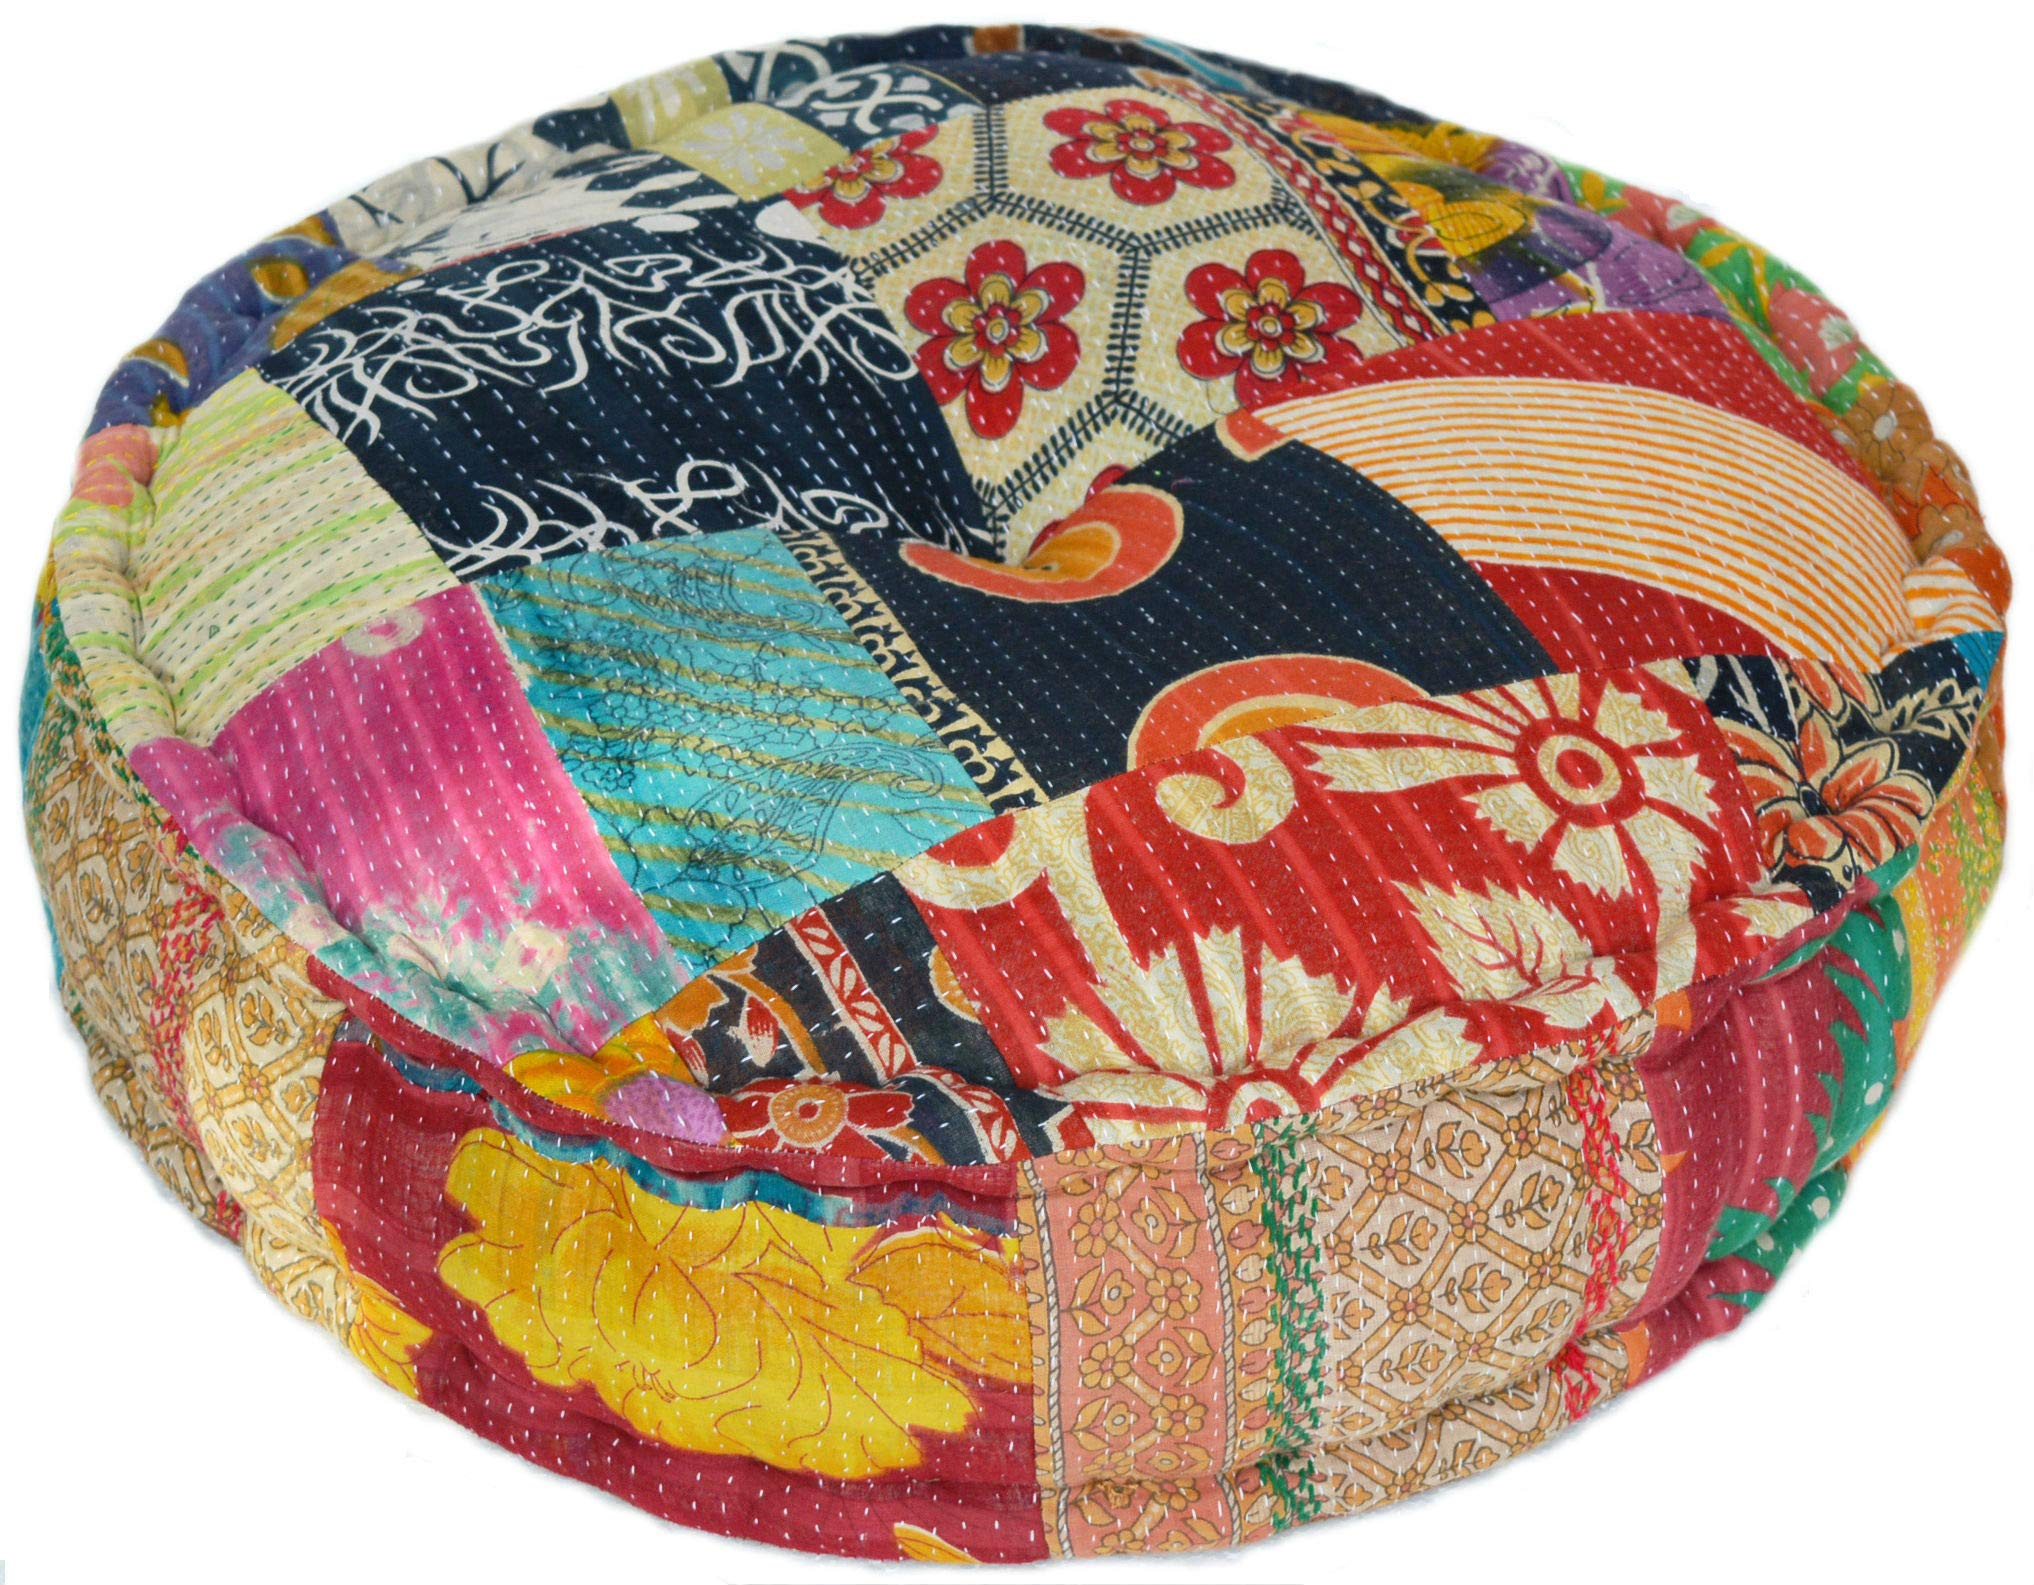 RANGILA Stuffed Indian Vintage Kantha Assorted Patch Floor Cushion; Pouf Ottoman; Round Pouf